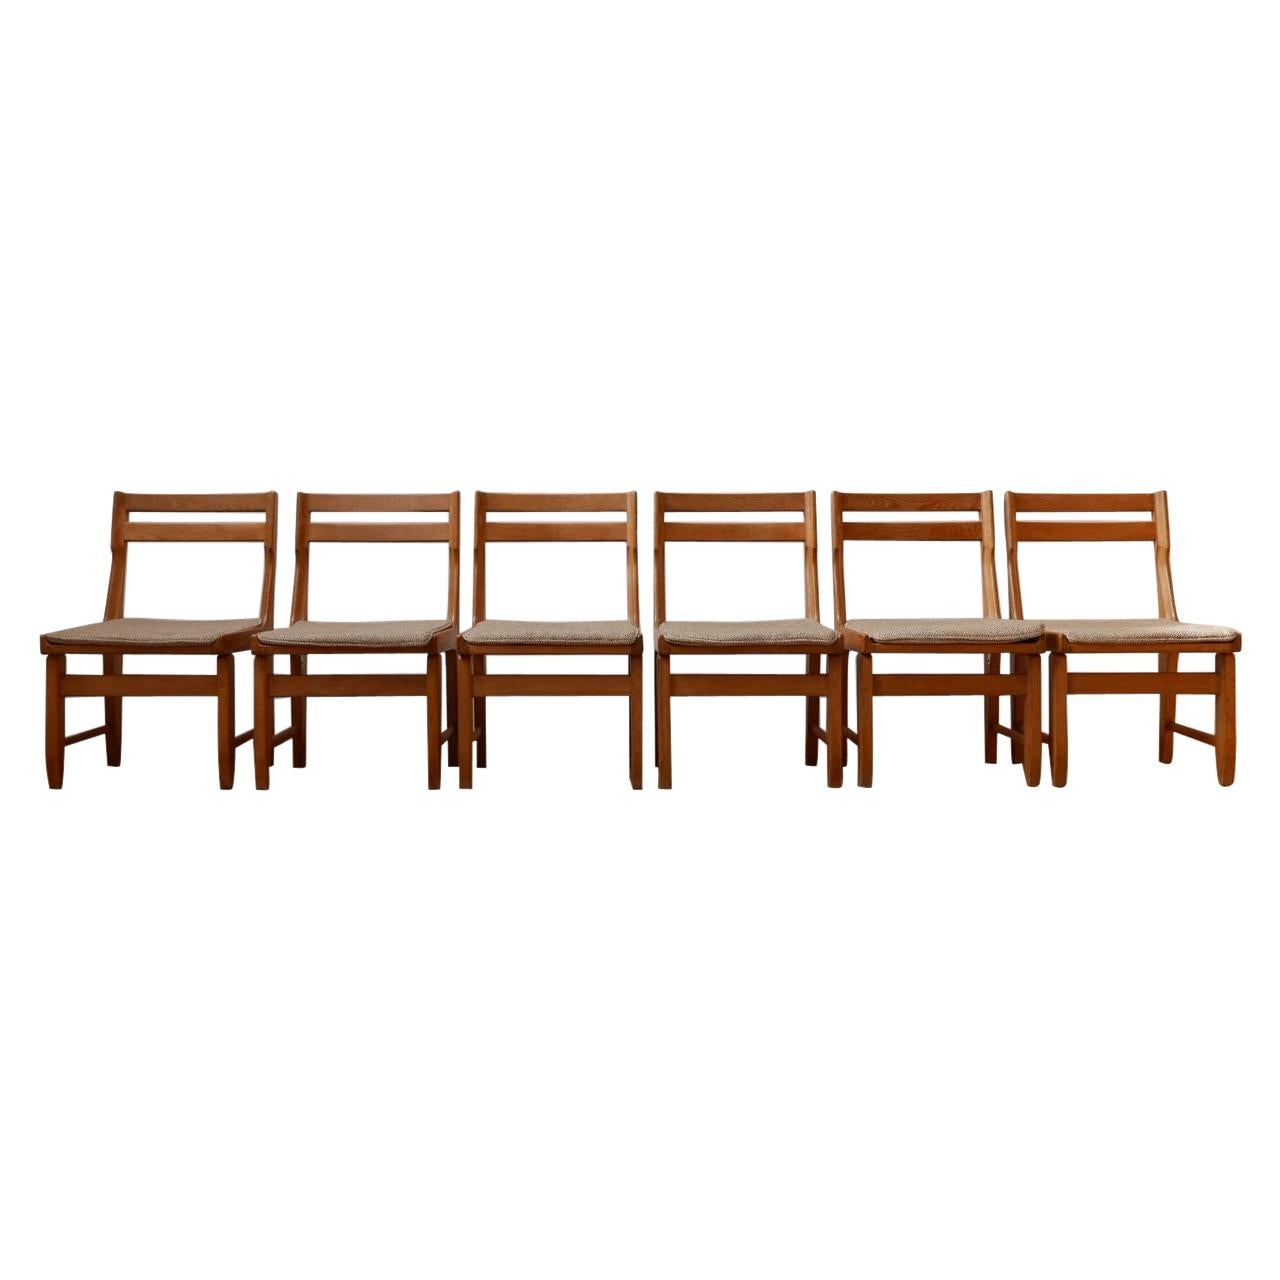 French Mid-Century Oak Dining Chairs by Guillerme et Chambron